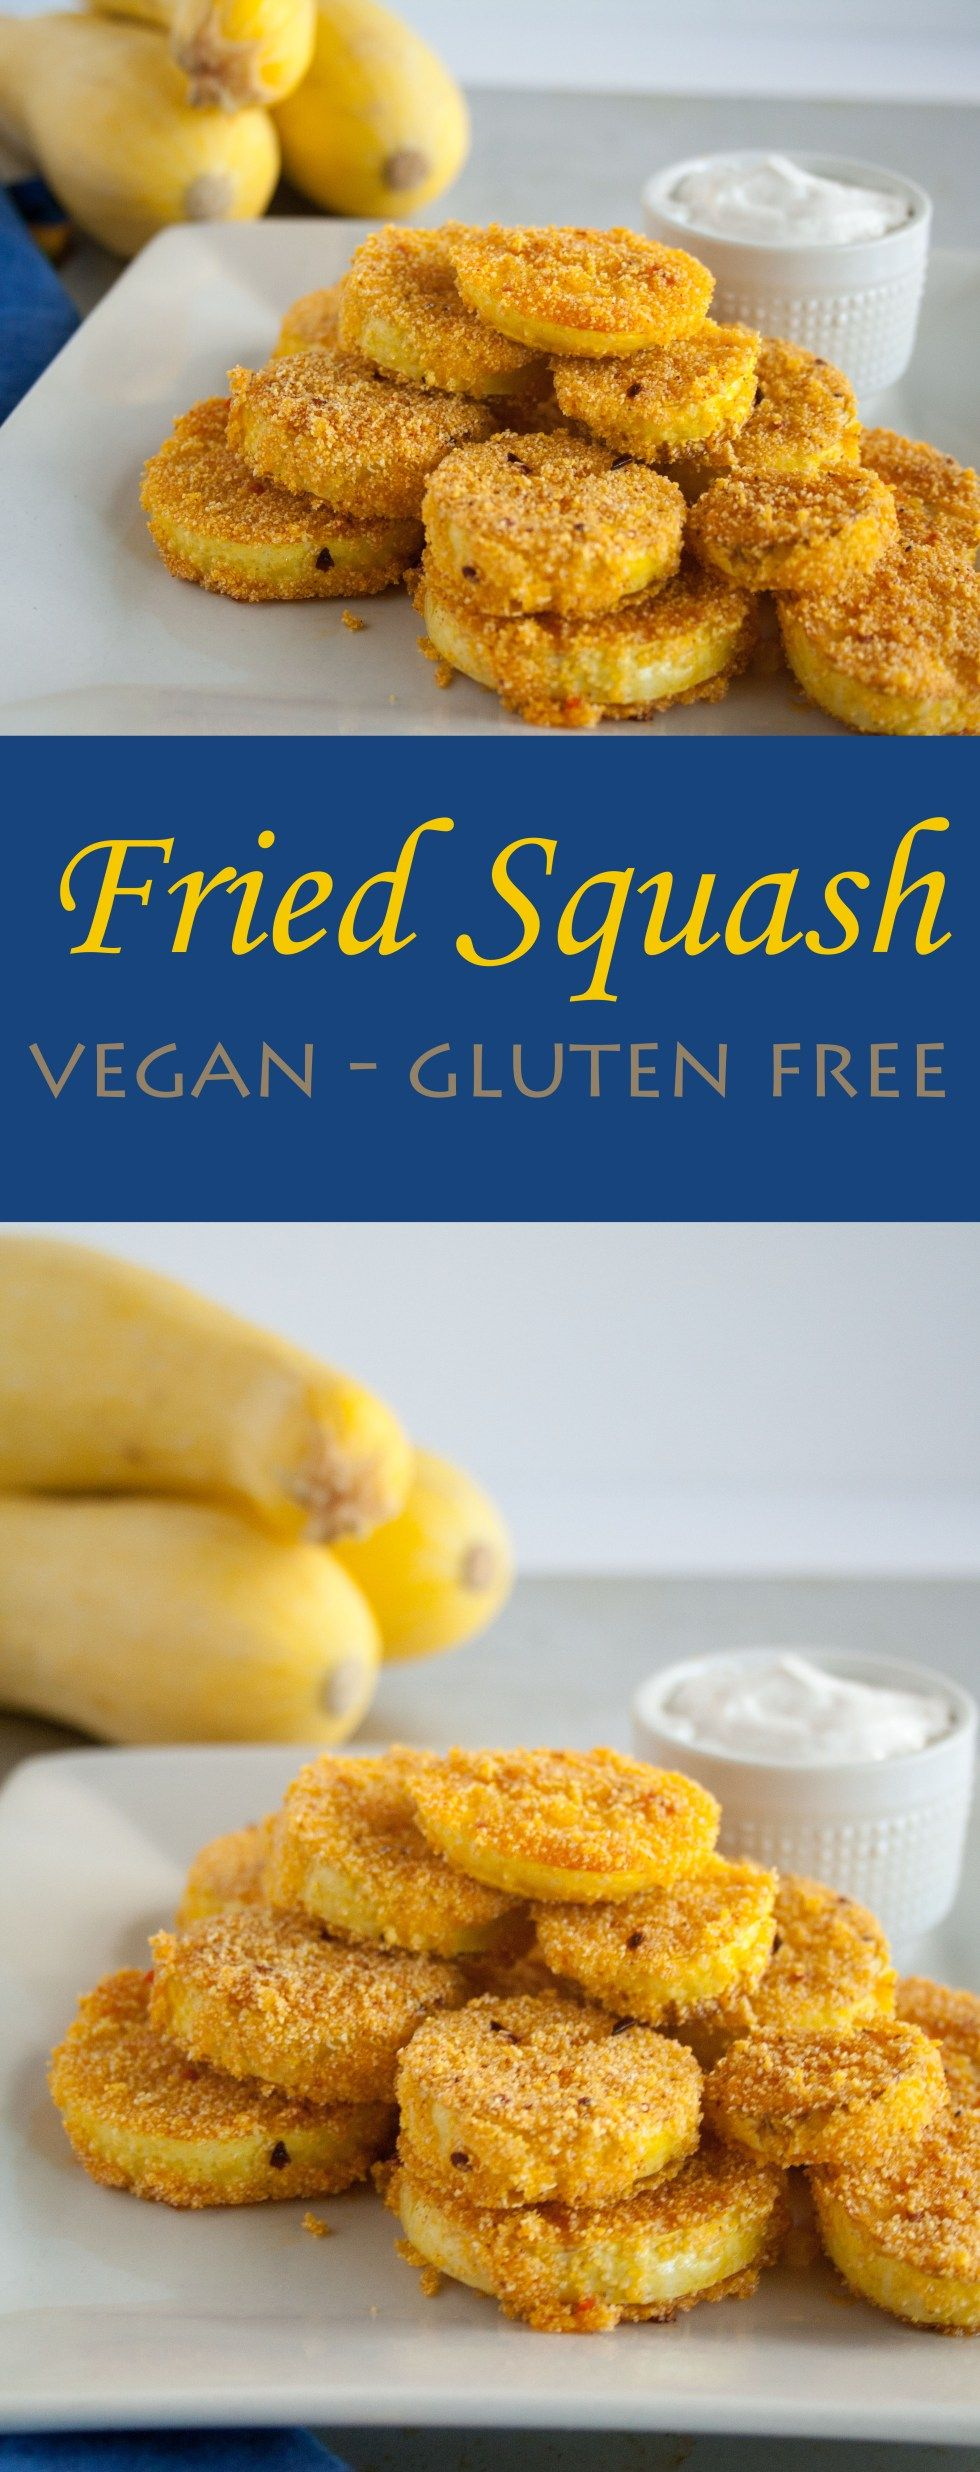 Fried Squash - These vegan gluten free bites are crispy on the outside and soft on the inside. They make a perfect appetizer or meal.